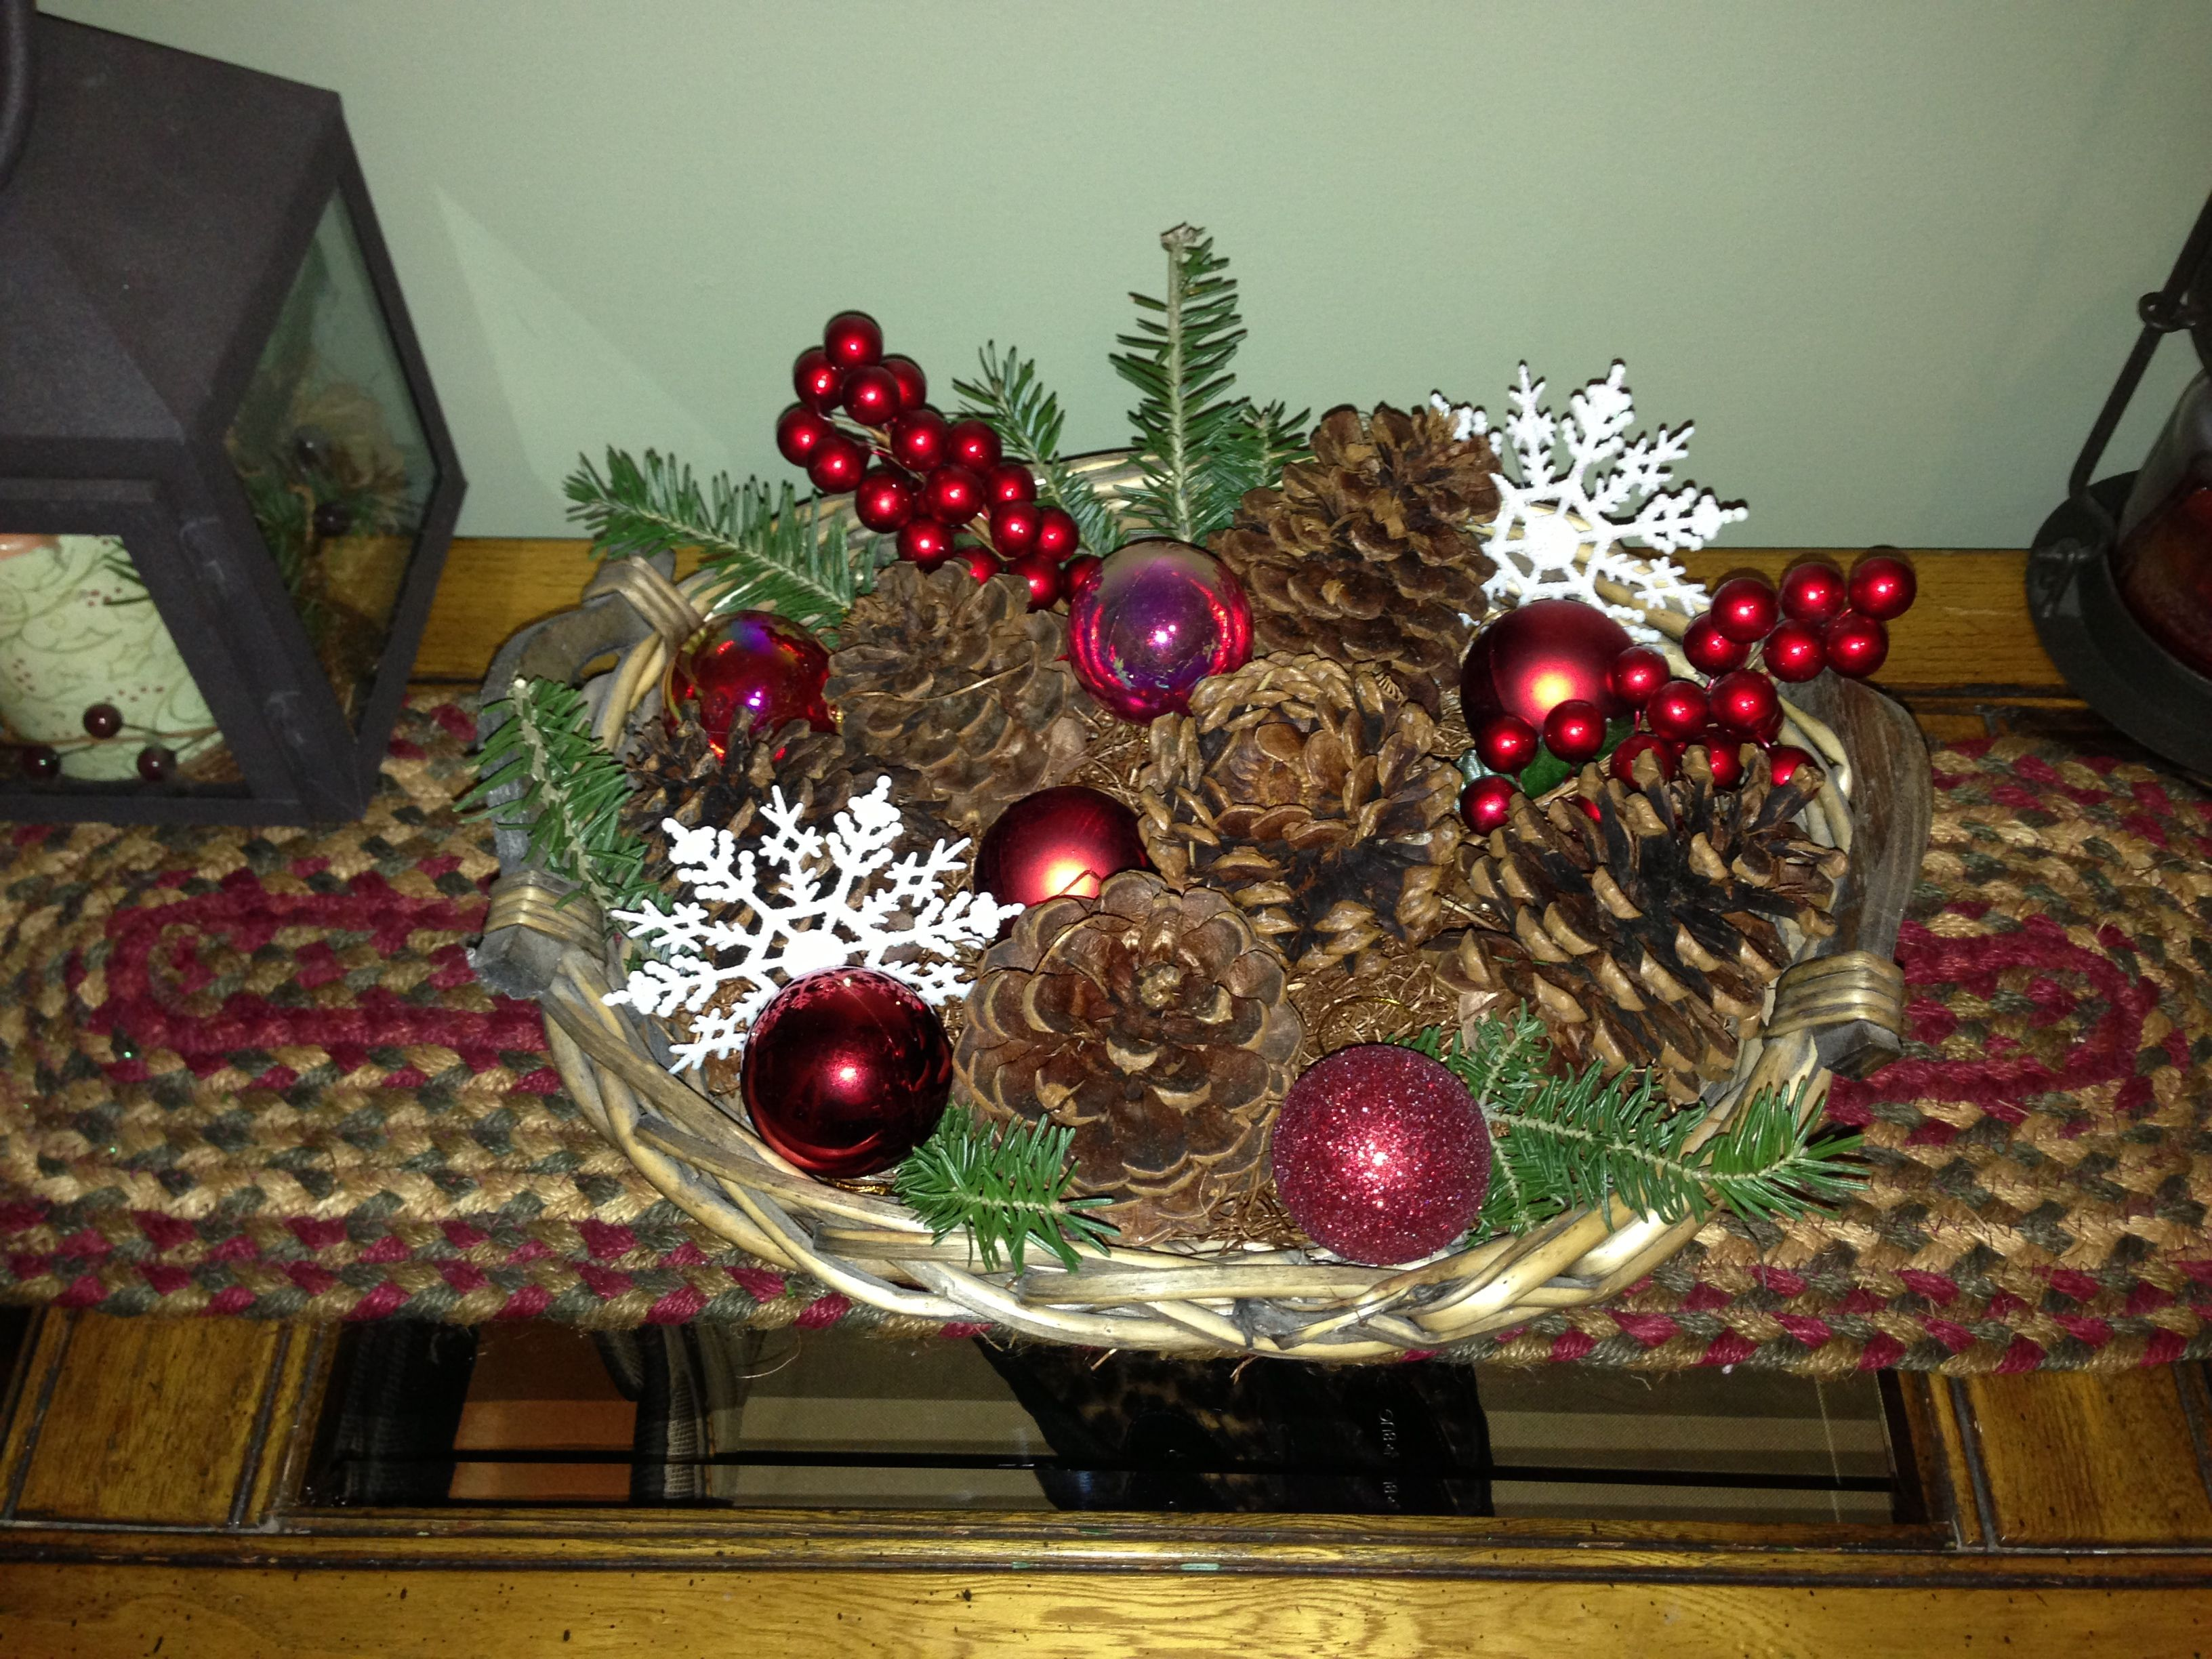 Christmas Table Decorations Basket Snowflakes From Dollar Tree Greenery Small Or Christmas Table Decorations Banquet Table Decorations Table Decorations